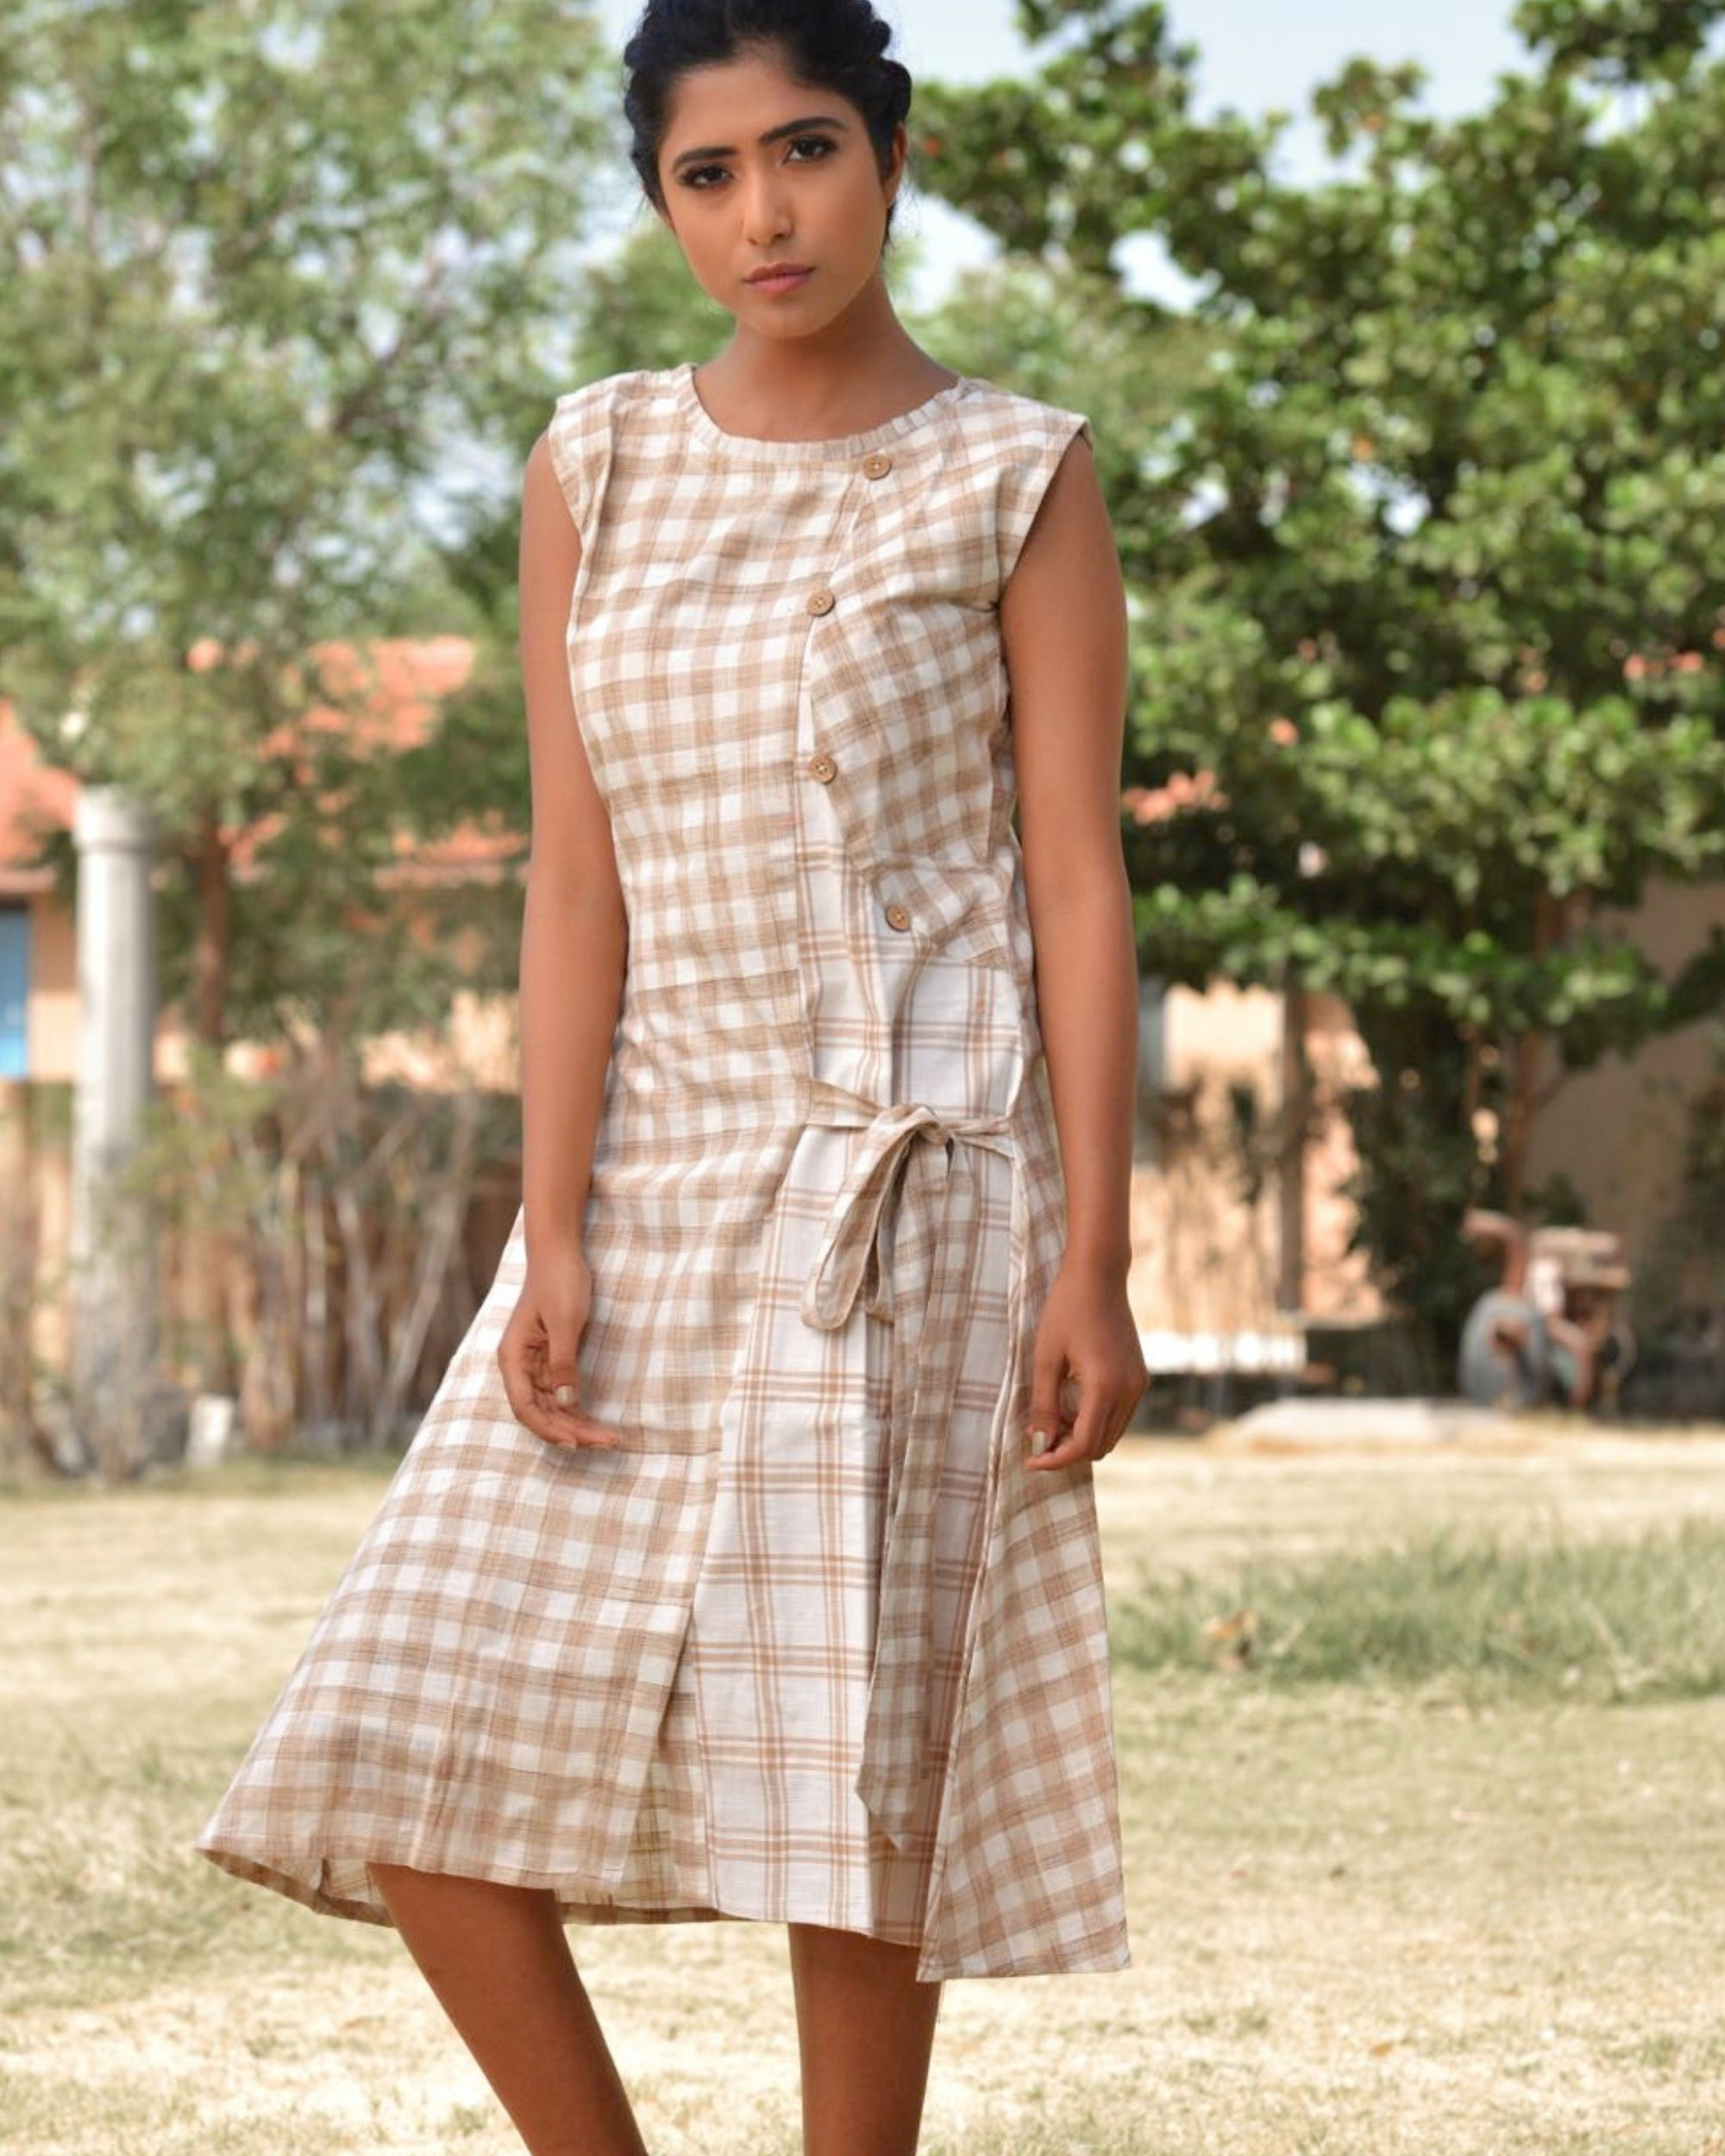 The beige and brown check pattern knot dress